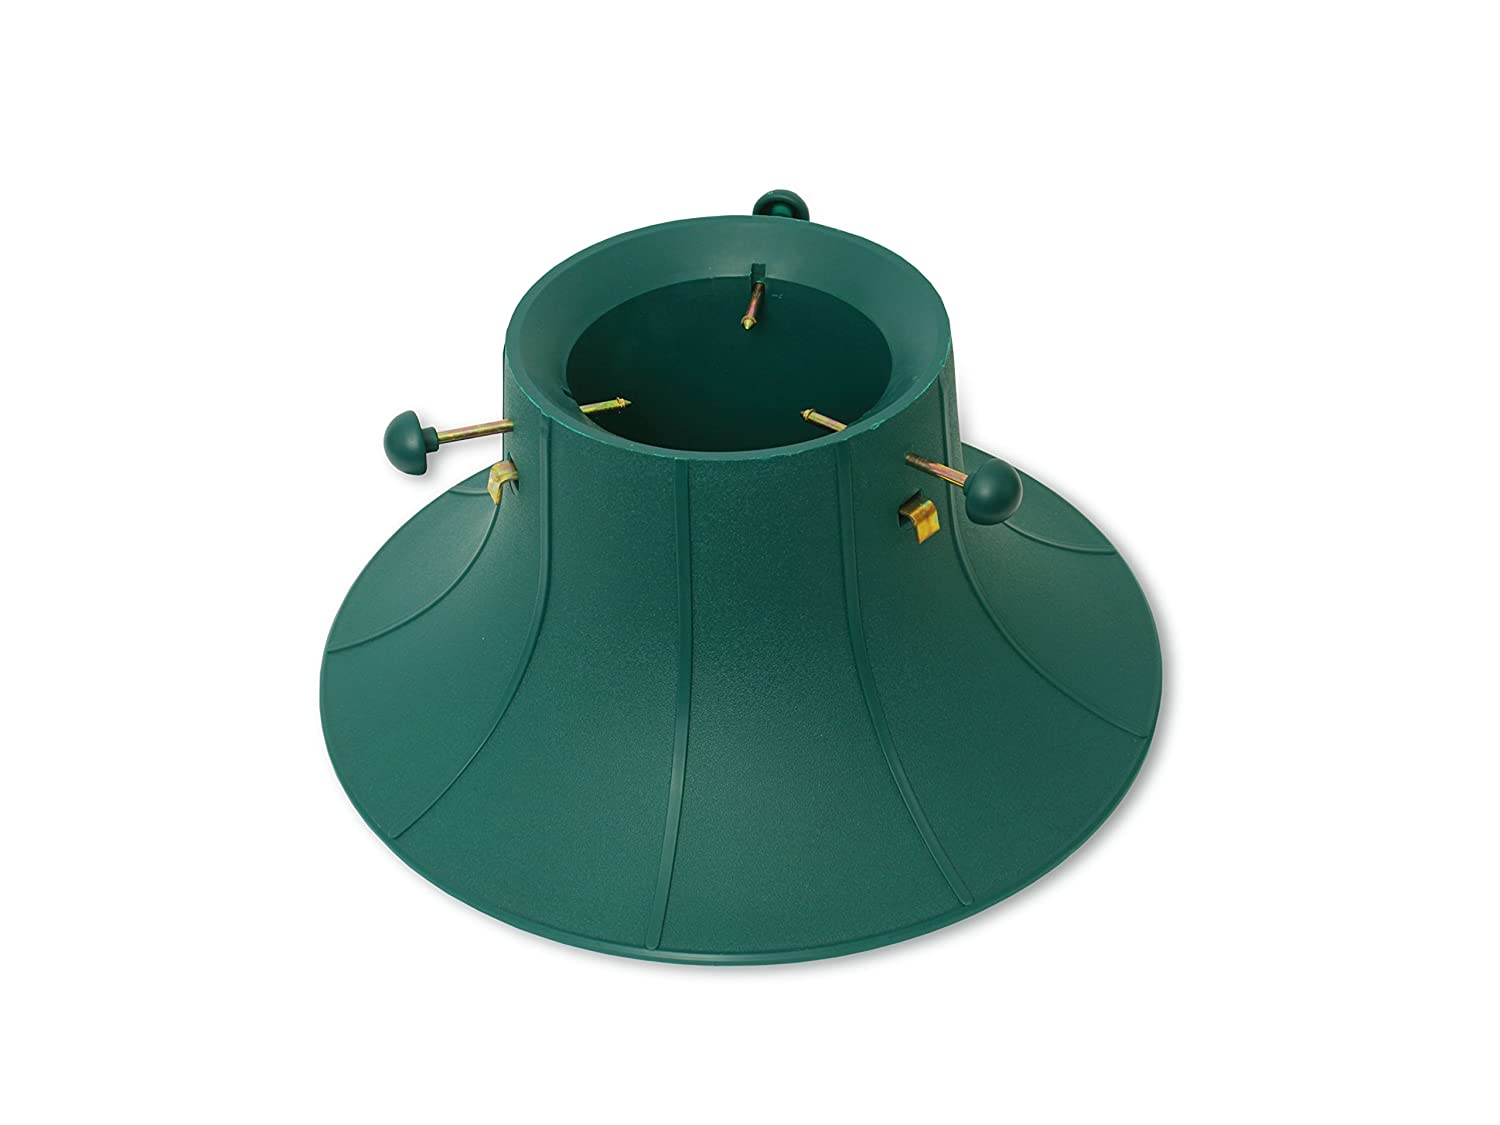 Algreen Products 03000 Christmas Tree Stand, Green